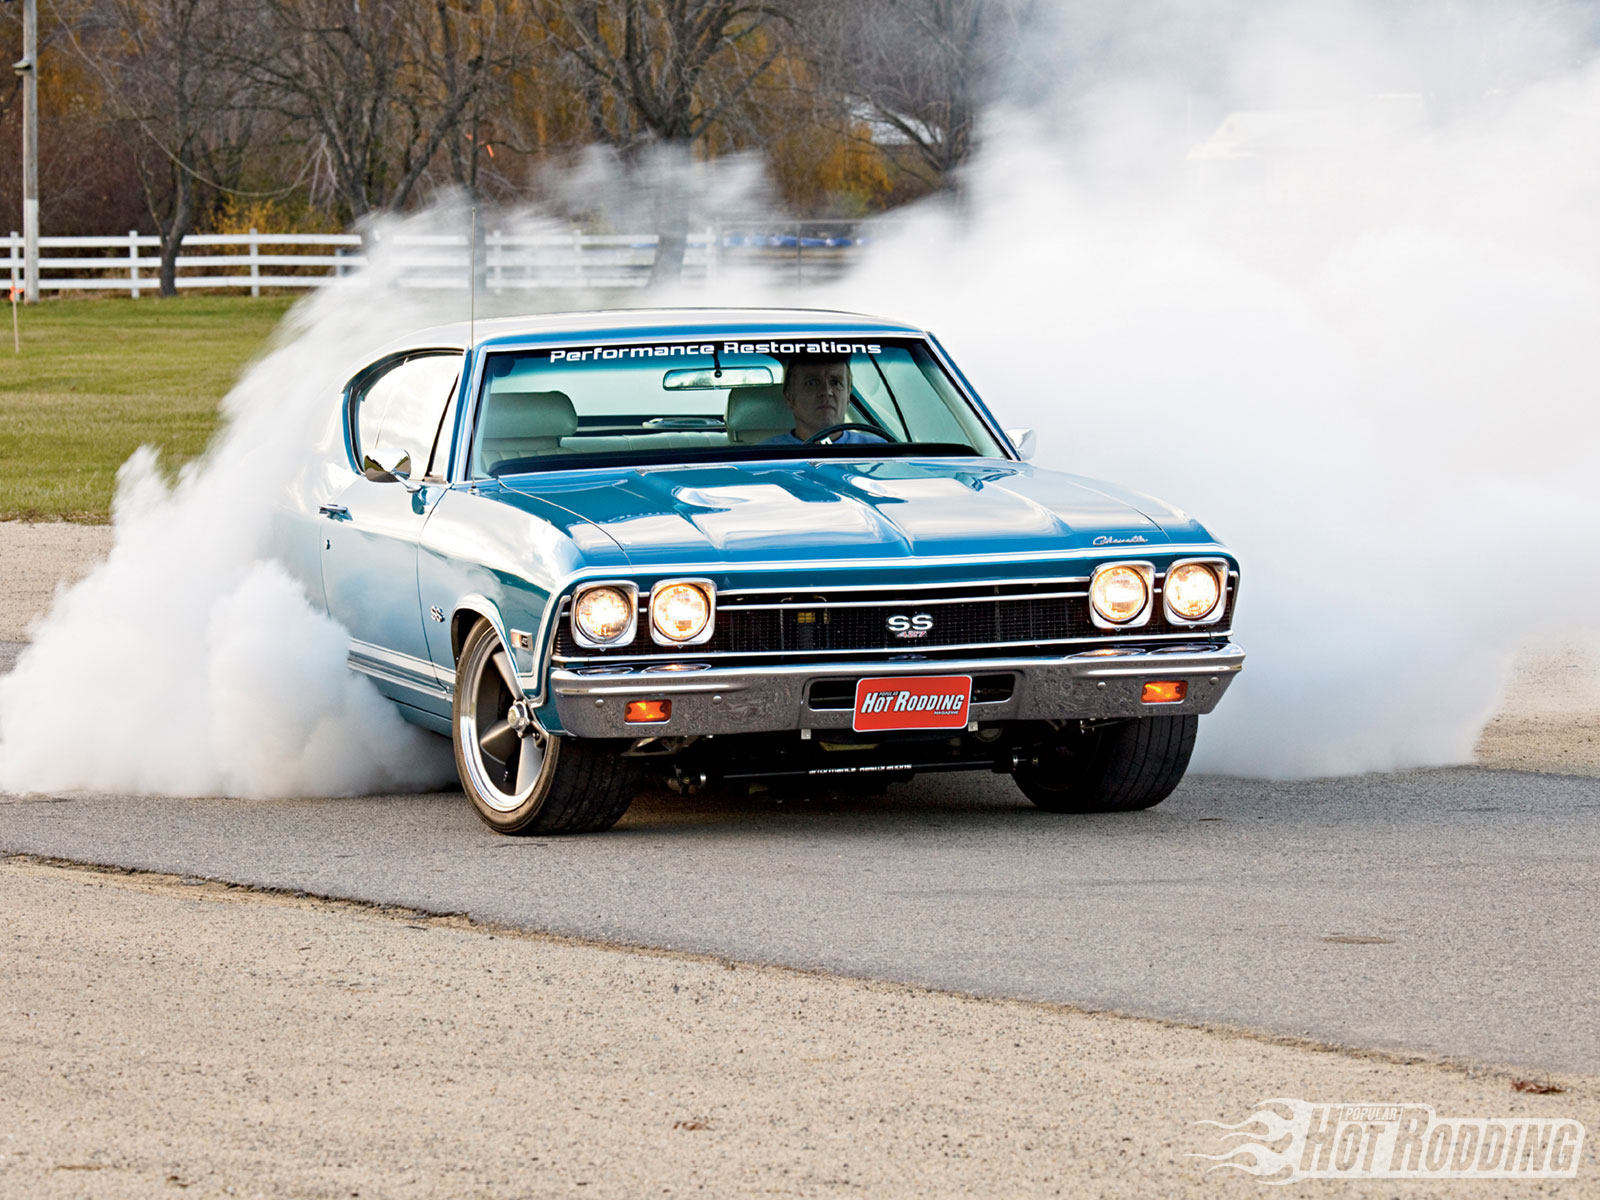 1600x1200px Muscle Car Burnout Wallpaper Wallpapersafari